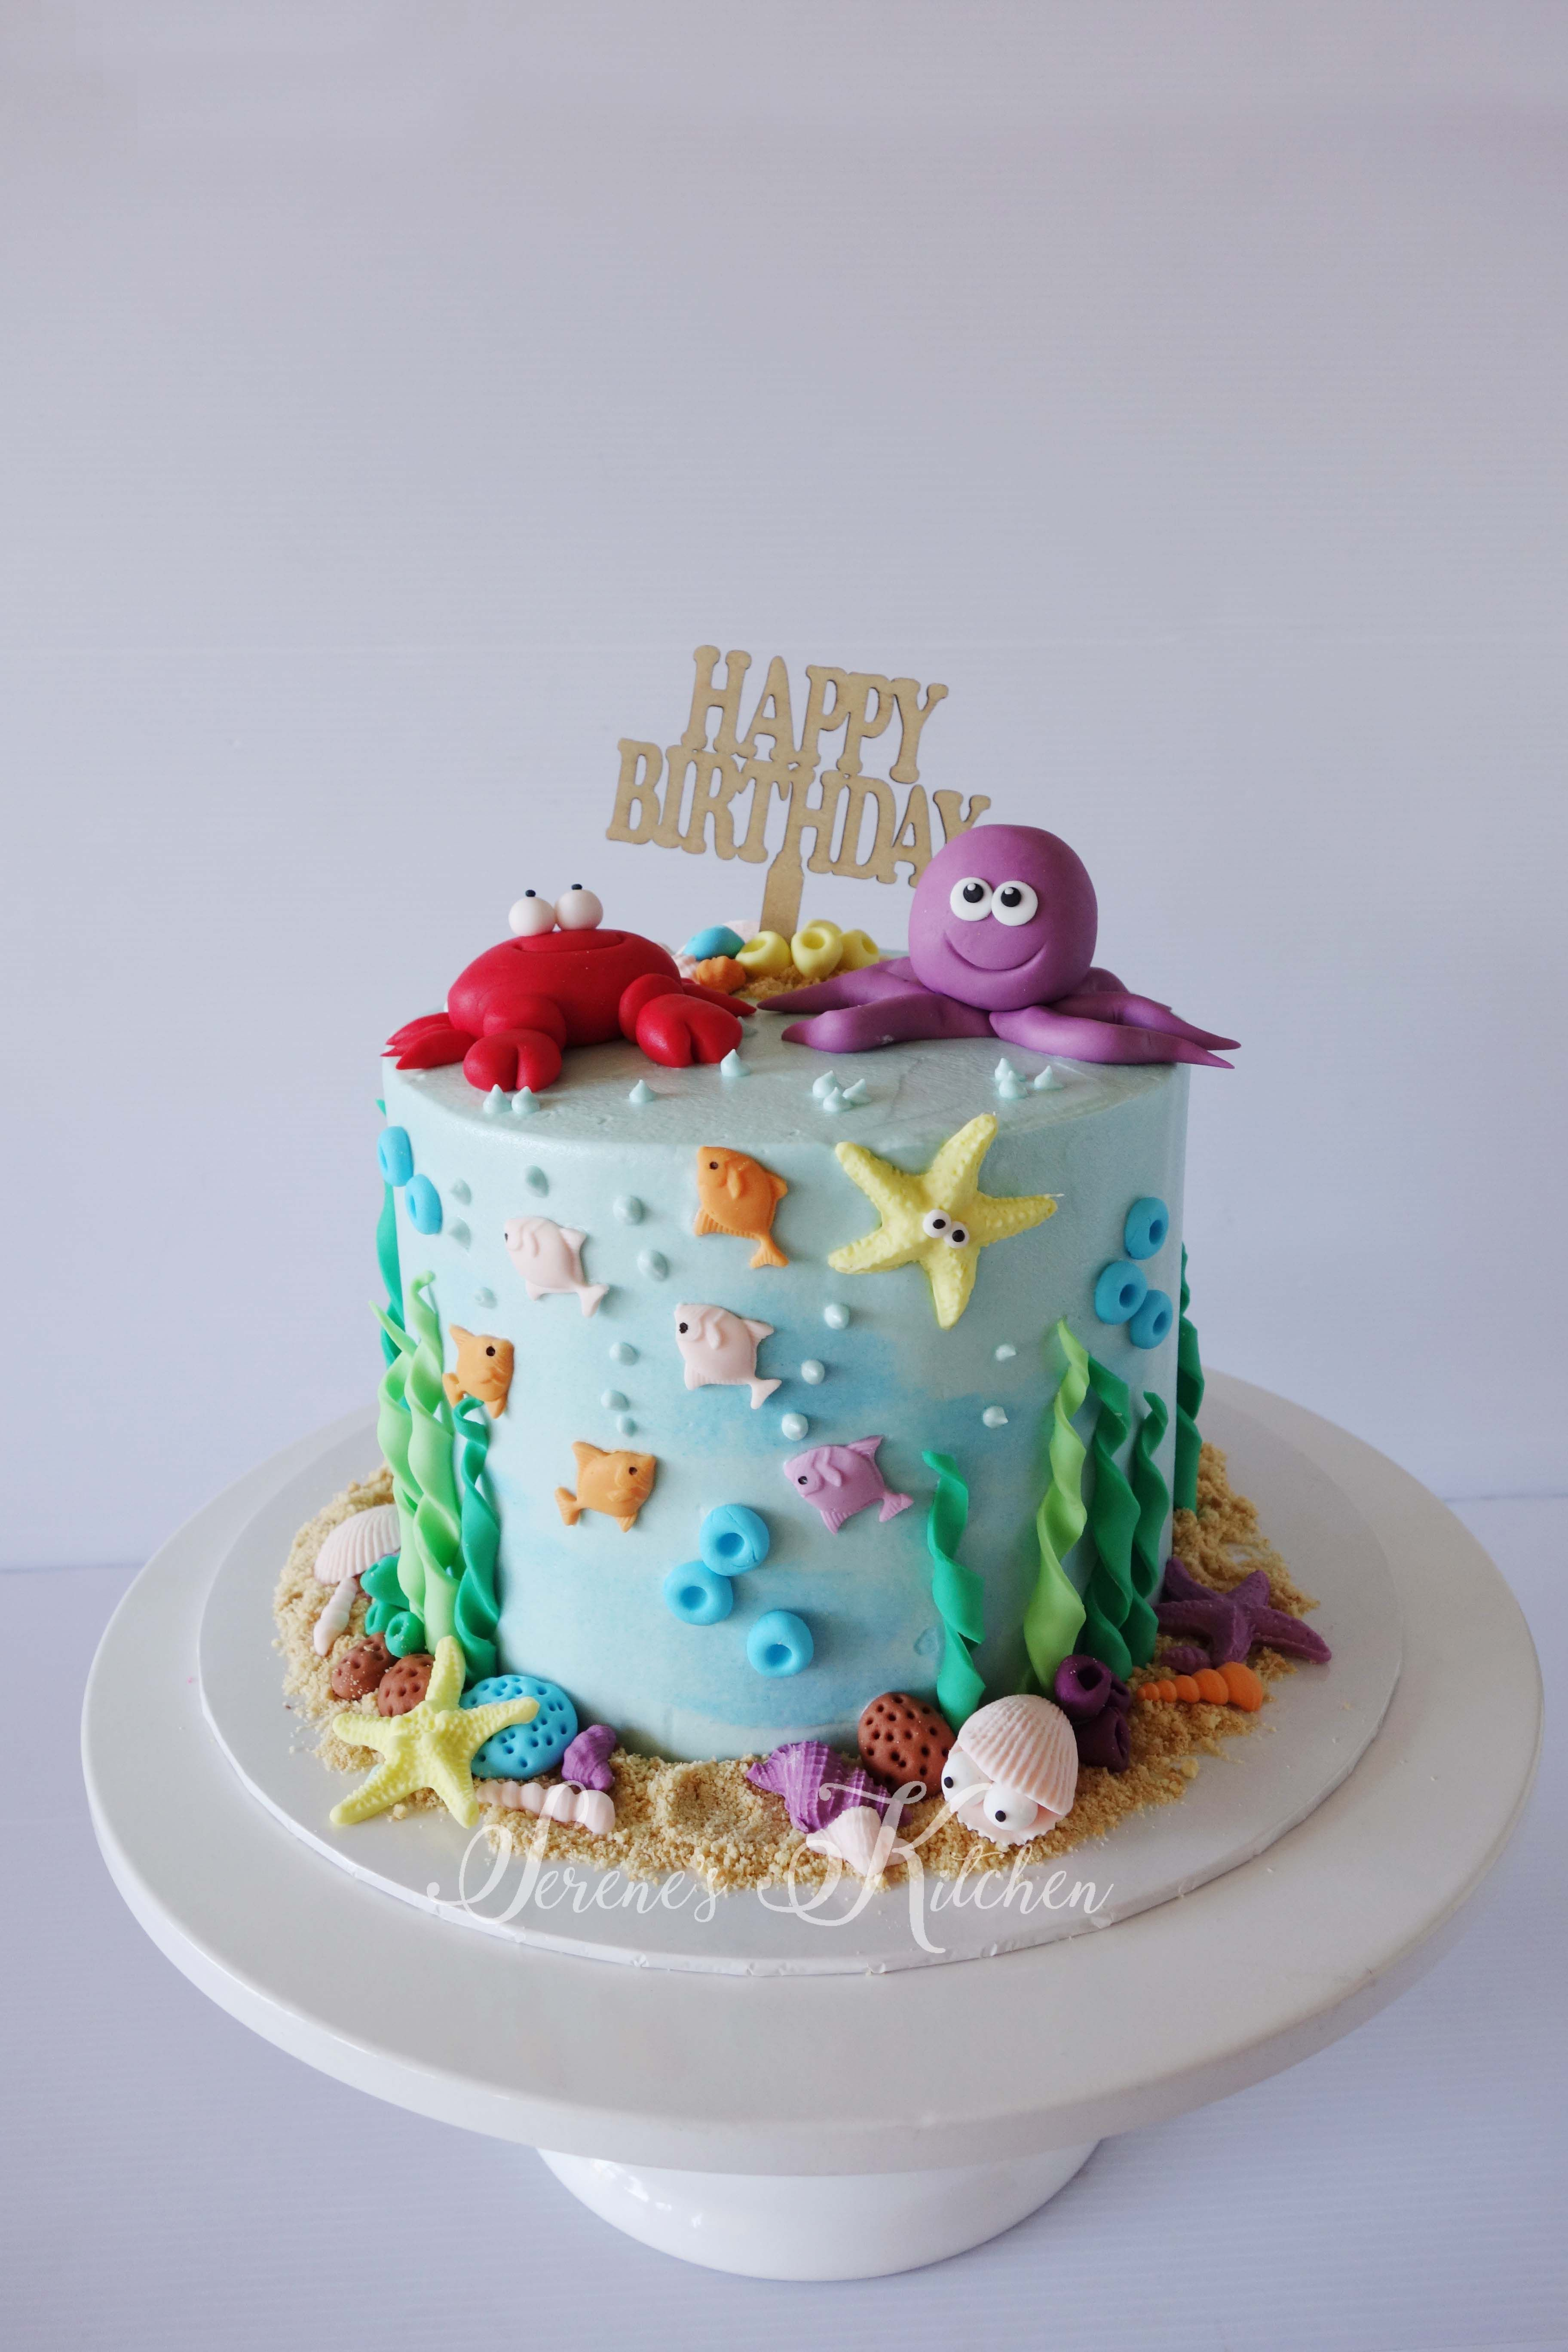 Under The Sea Cake By Serenesskitchen088 Ocean Birthday Cakes First Birthday Cakes Beach Birthday Cake